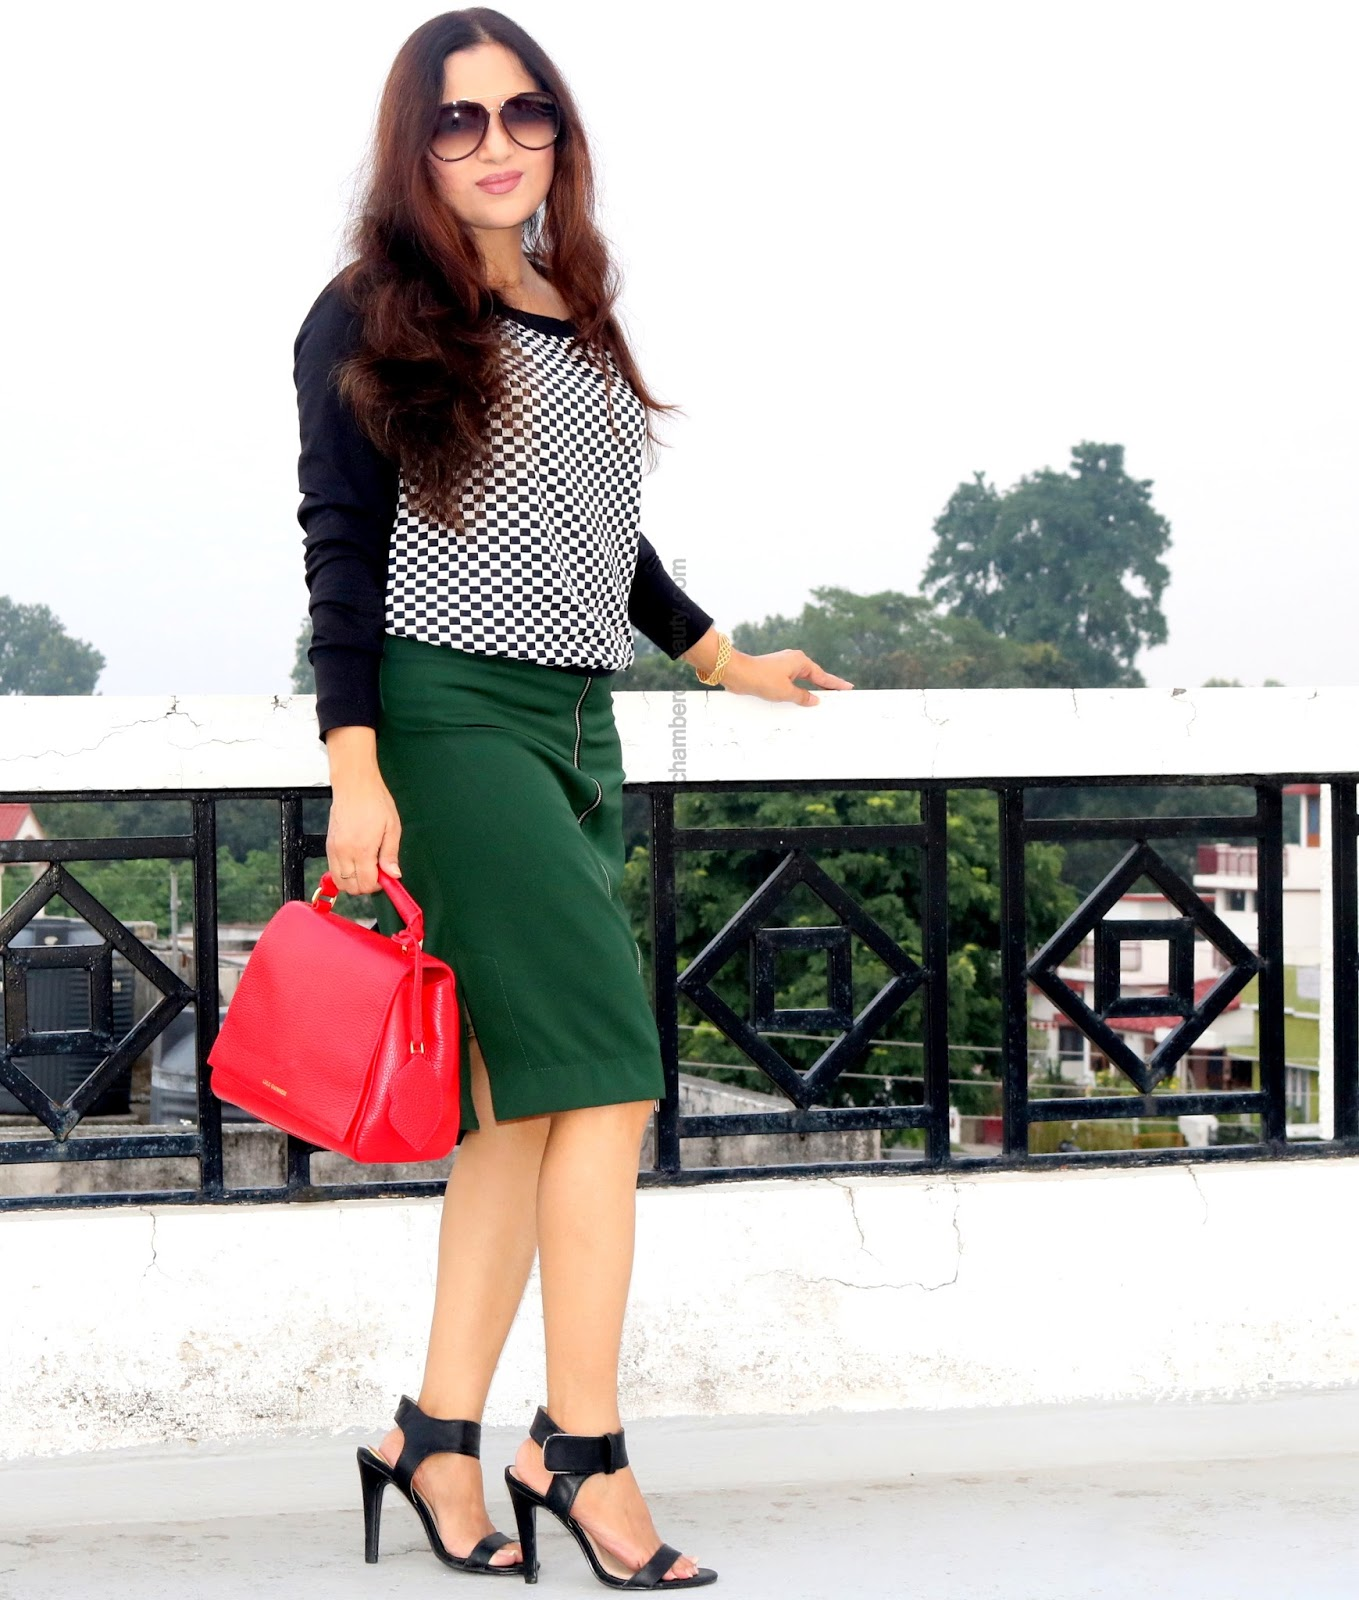 FALL FASHION TRENDS 2016, Indian fashion blog, OOTD, how to style a pencil skirt, outfit of the day,